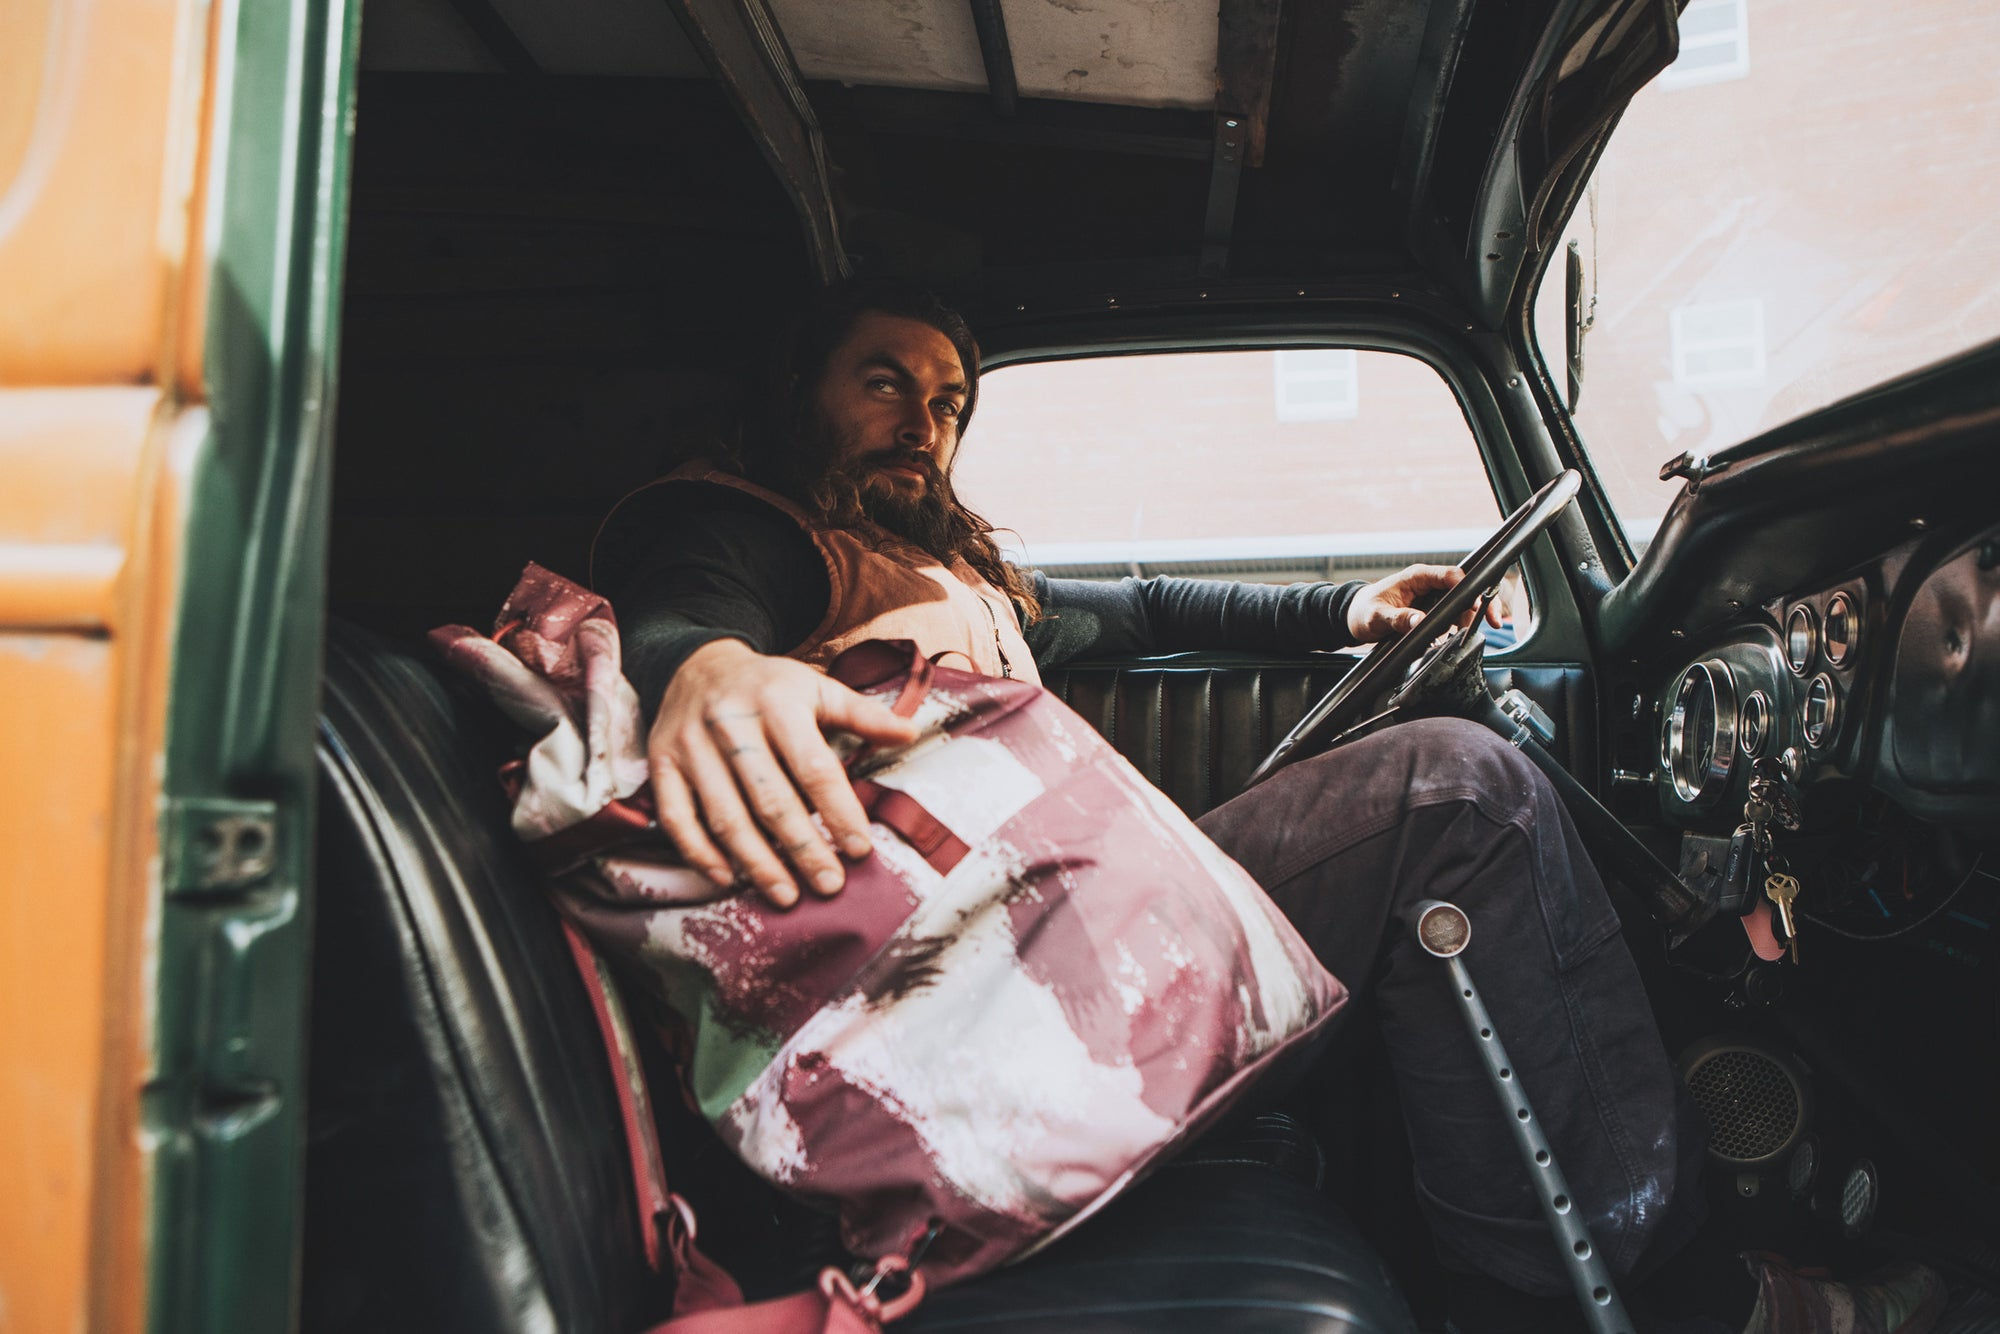 Jason Momoa is shown in an old car holding the So iLL x On The Roam eco camo 45L dirt bag is shown at elephant rocks state park